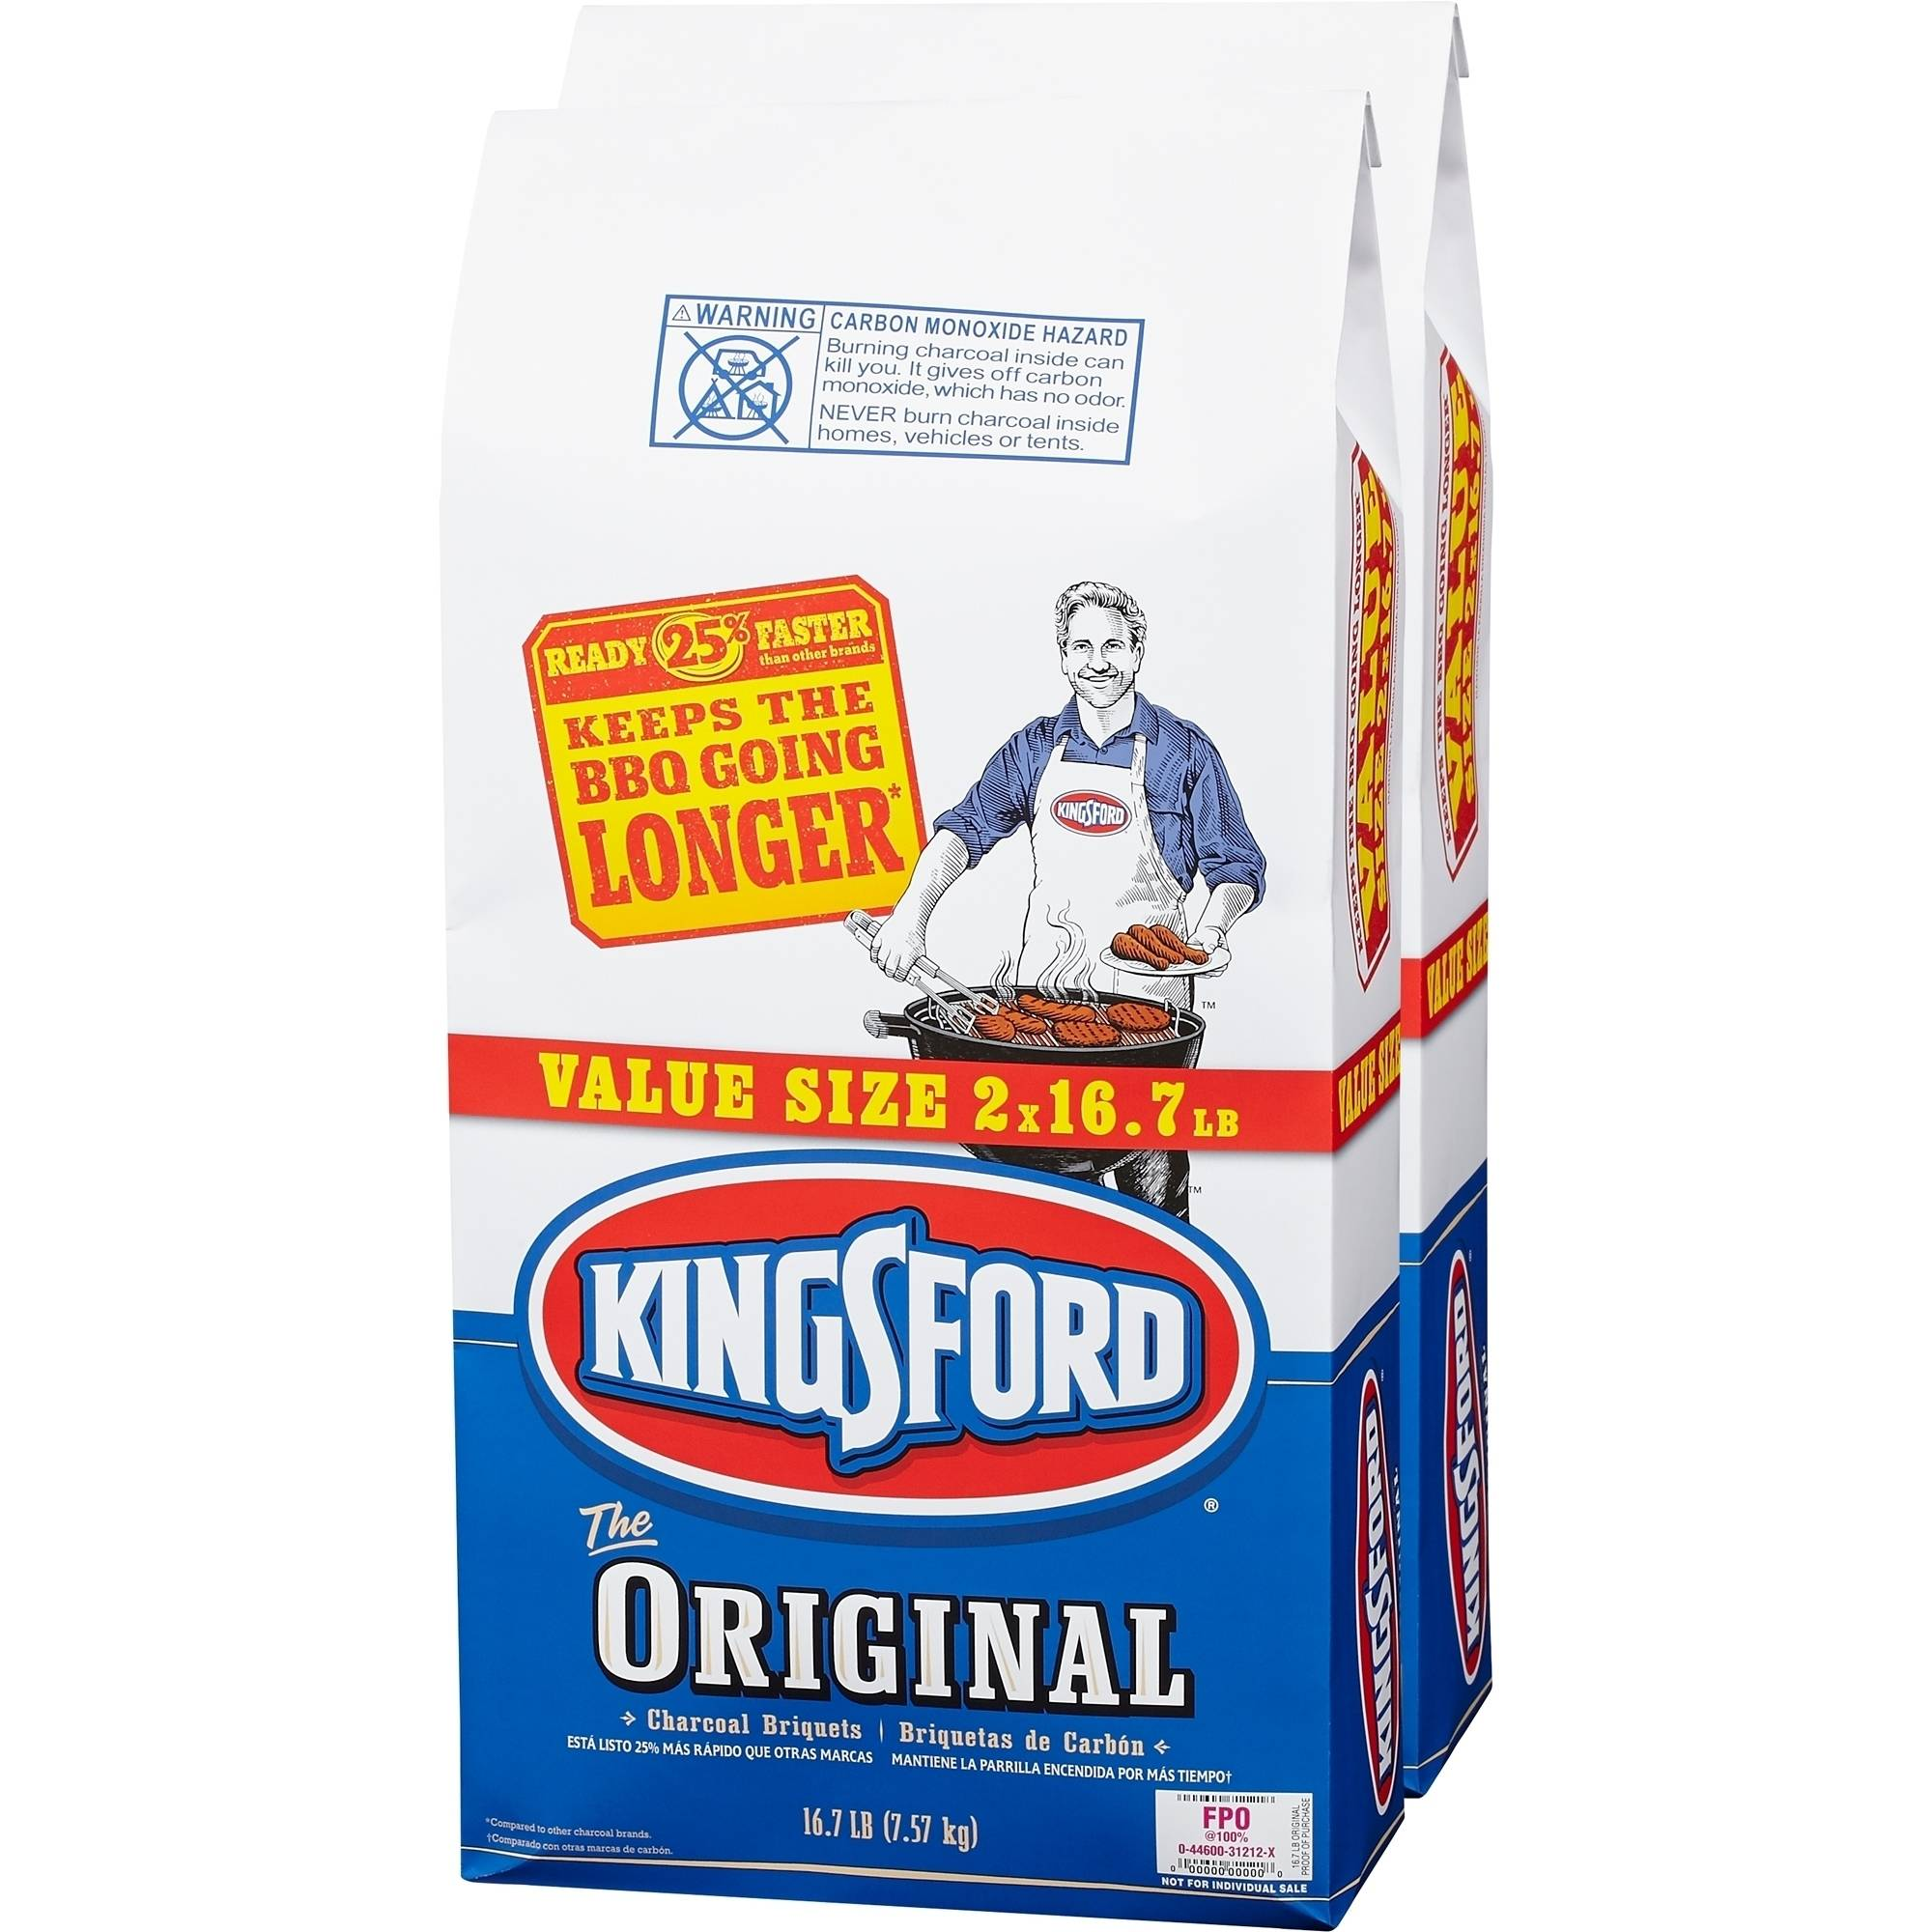 Kingsford Original Charcoal Briquets, 16.7 lbs, 2 ct